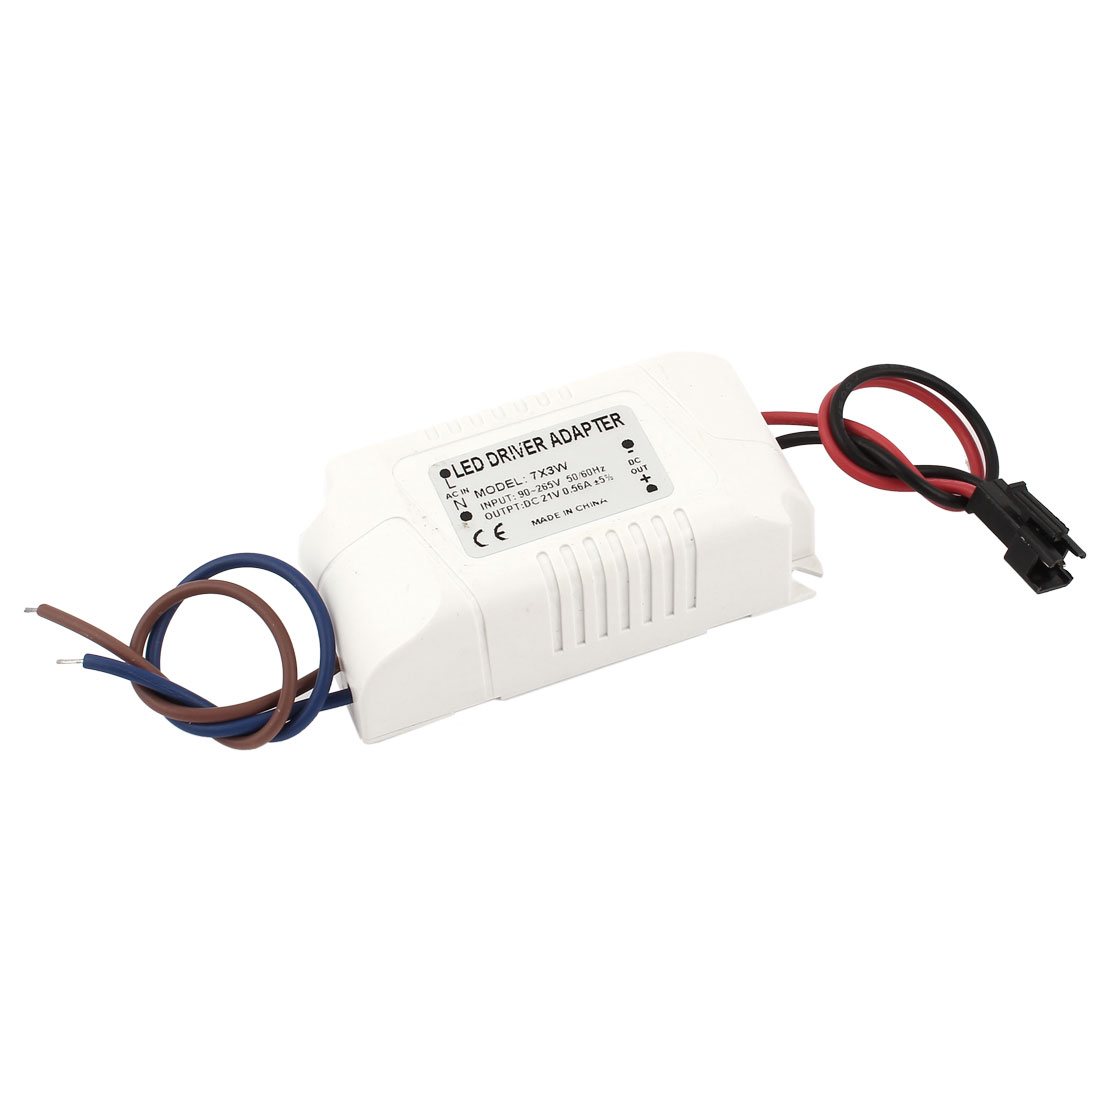 AC 90-265V to DC 21V 0.56A 7x3W Power Supply Transformer Driver Adapter for LED Light